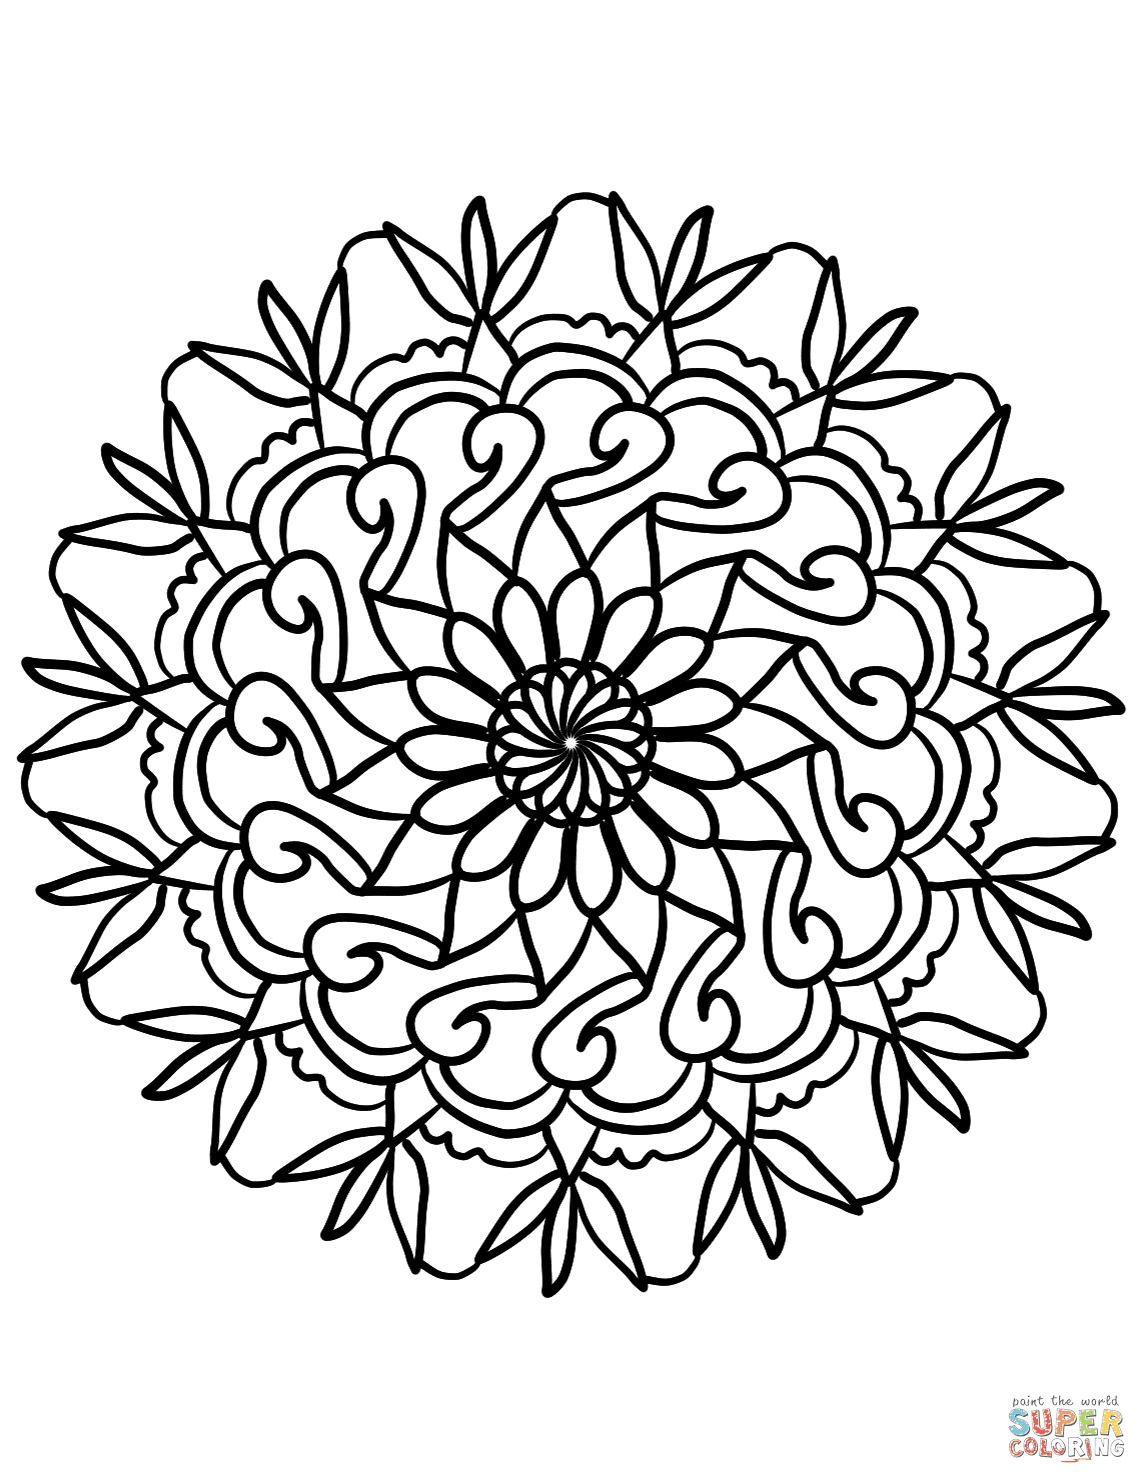 Simple Flower Mandala Coloring Page Free Printable Coloring Pages